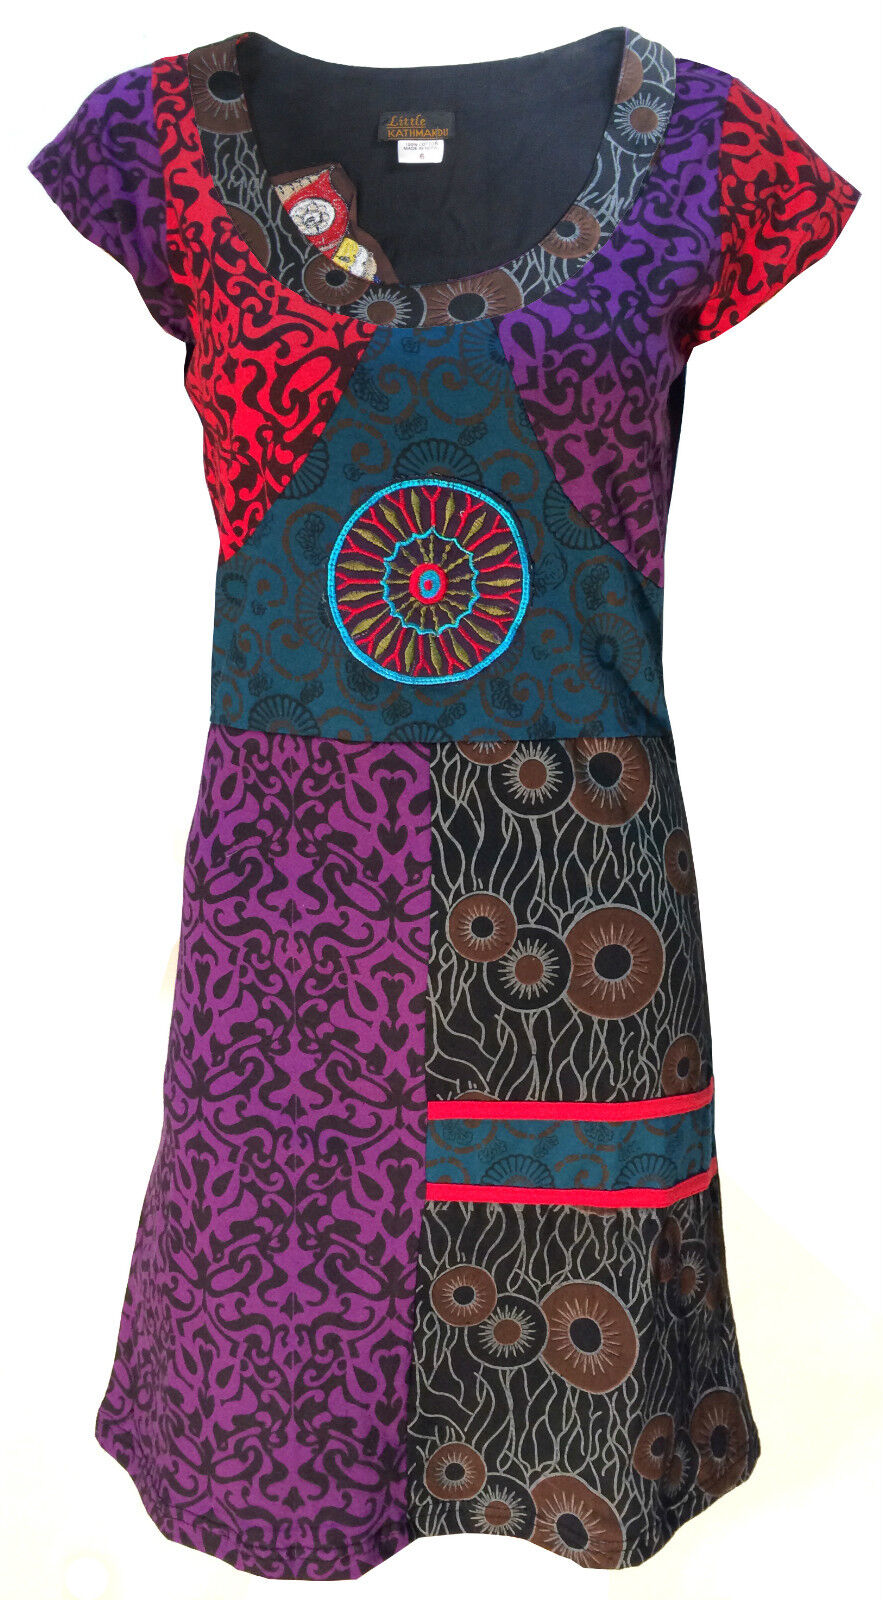 Handmade Cotton Hippie Natural Kathmandu Boho Retro Psychedelic Dress